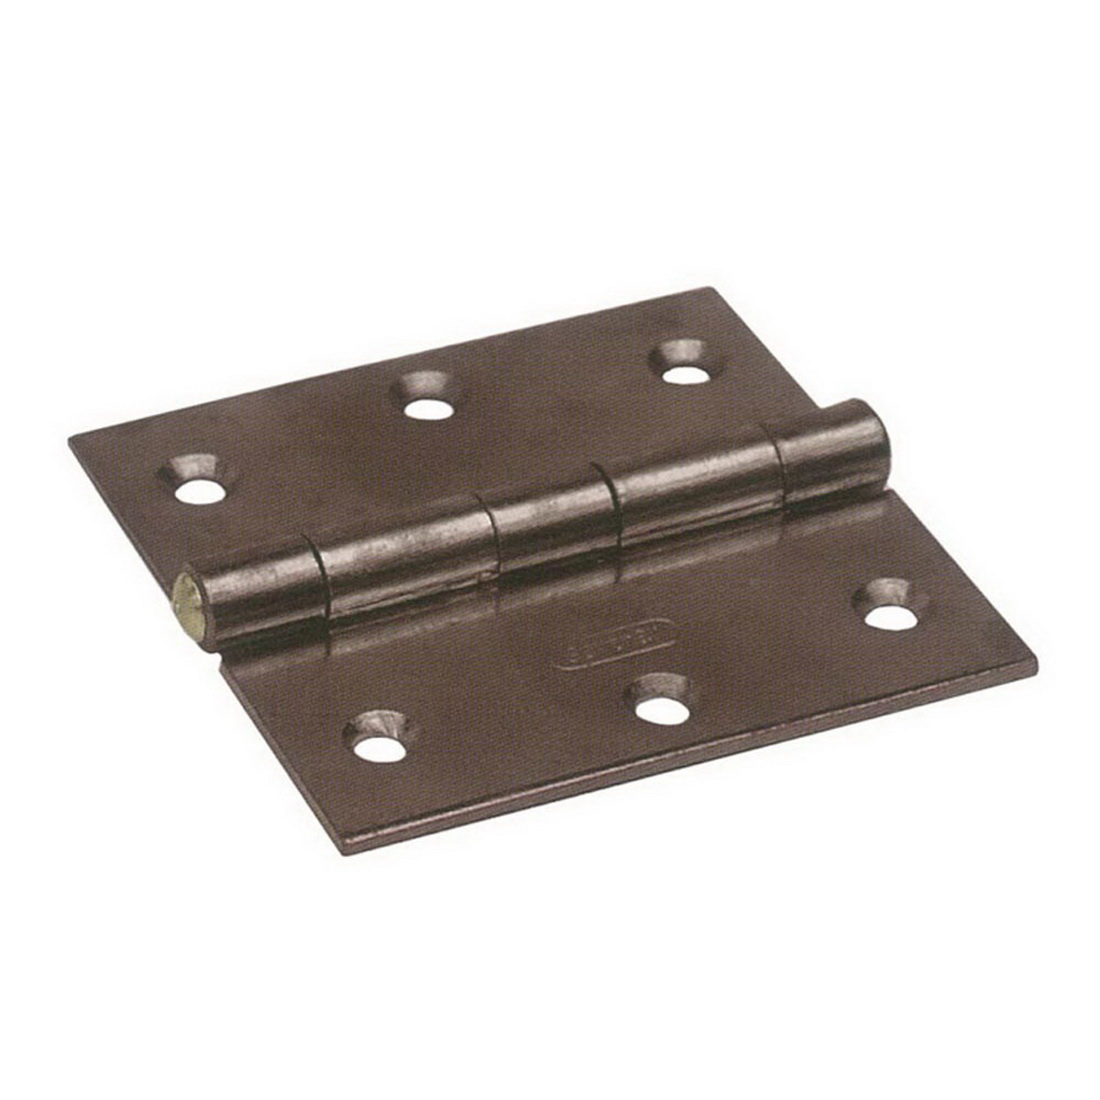 100 x 100mm Loose Pin Wide Butt Hinge Florentine Bronze